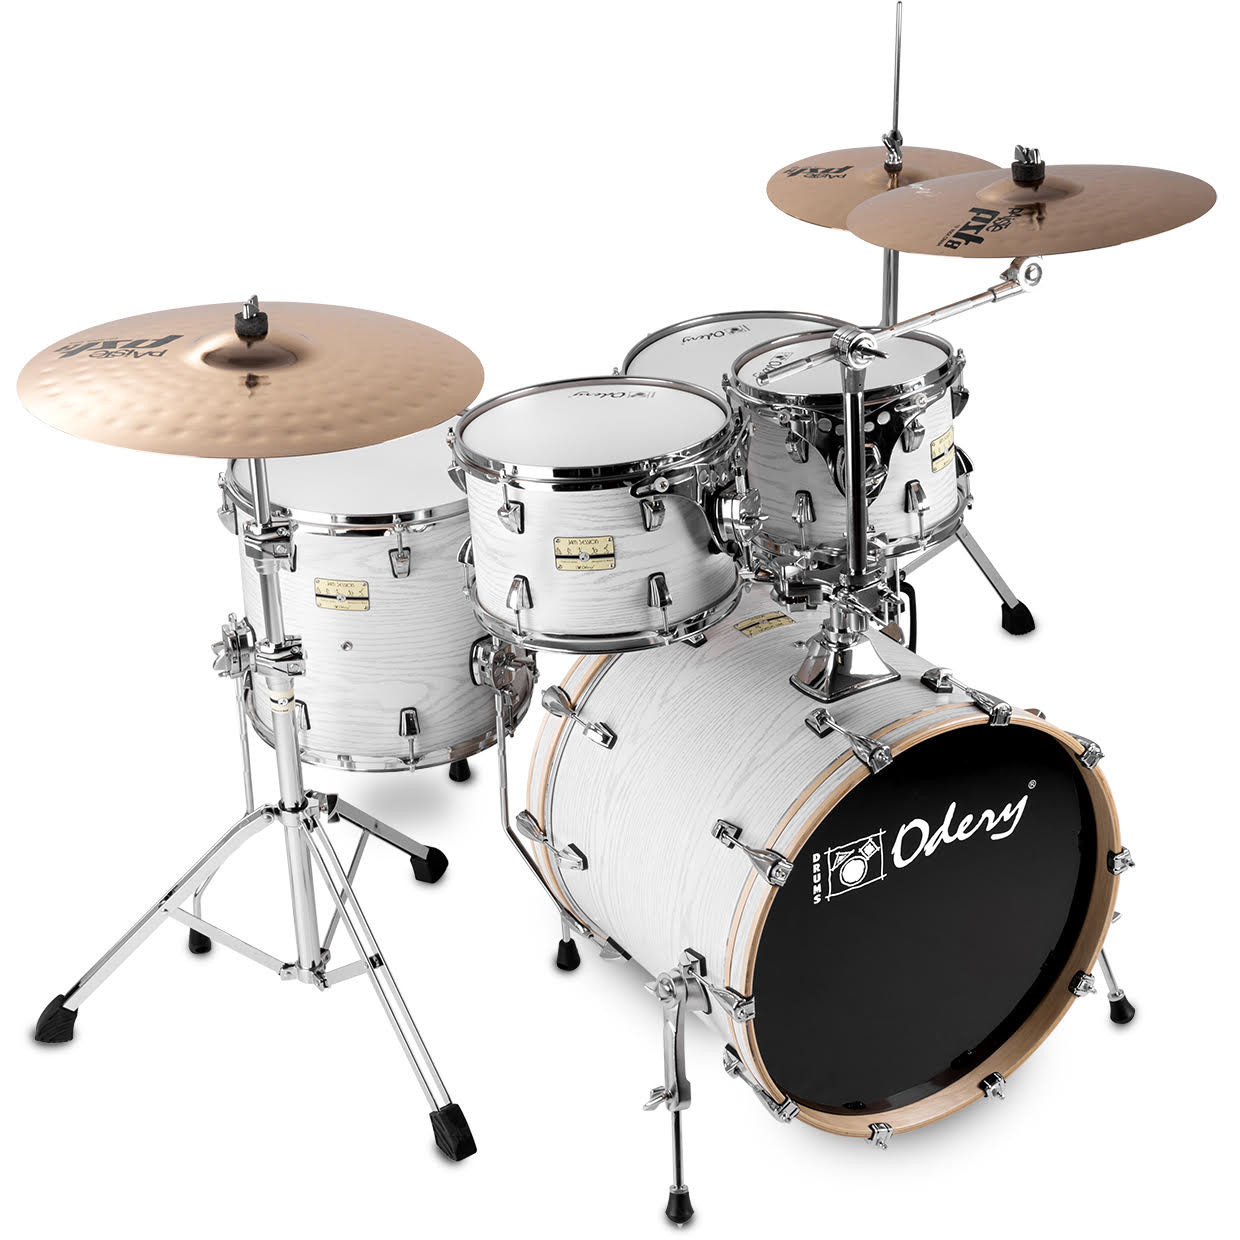 Odery FL200 Jam Session White Ash 5 piece shell set with hardware